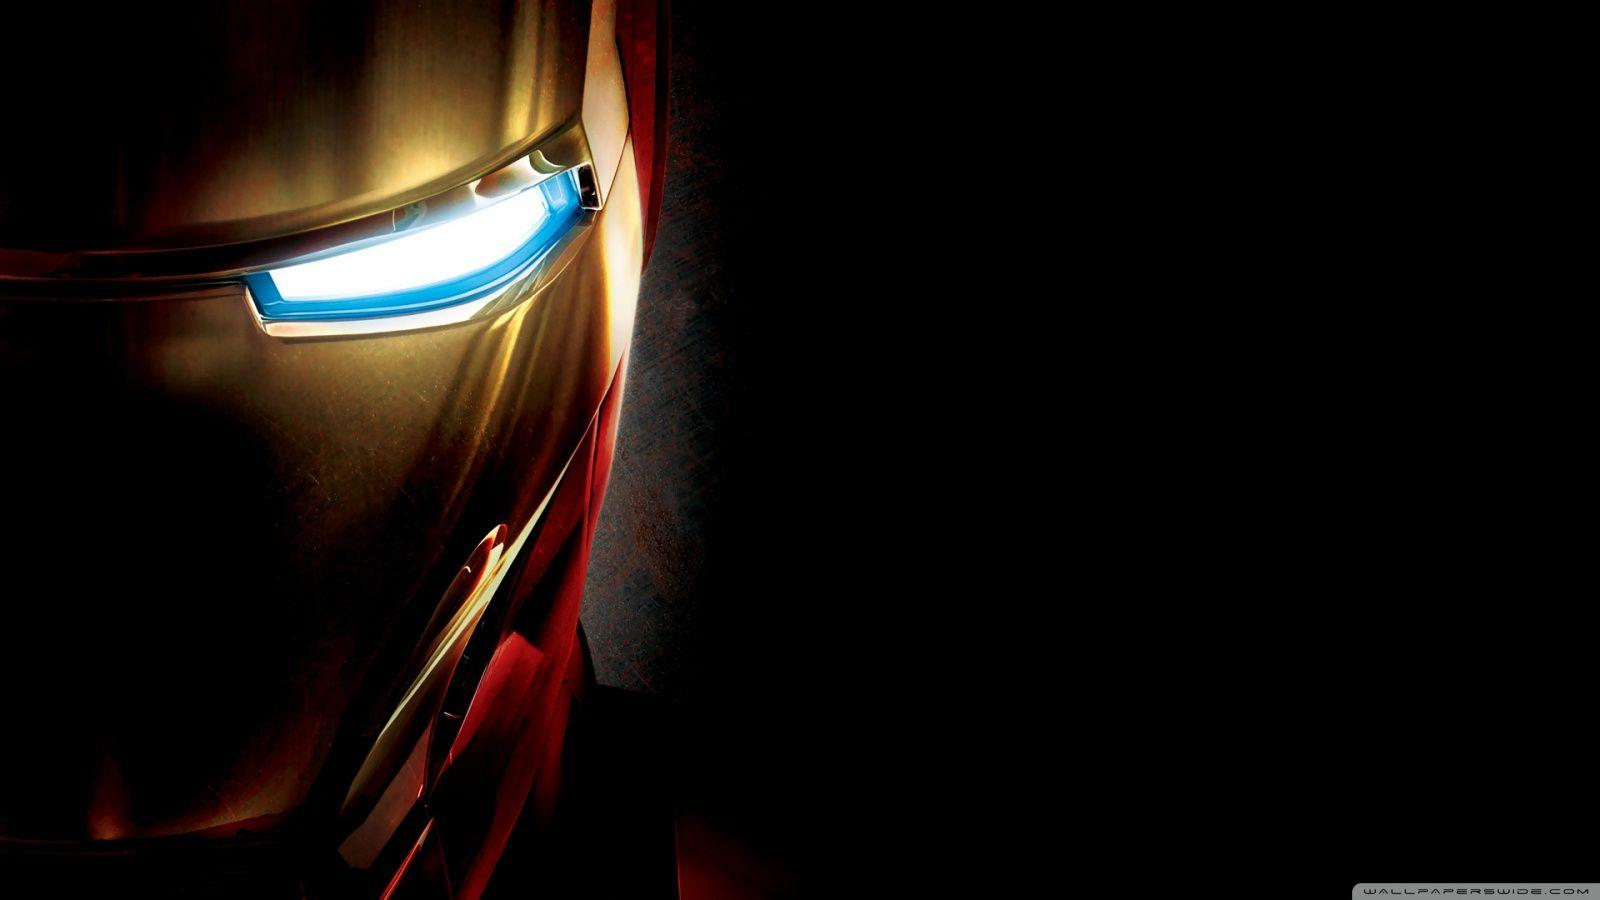 Best Iron Man Wallpaper Iron Man Eye ❤ 4K Hd Desktop Wallpaper For .